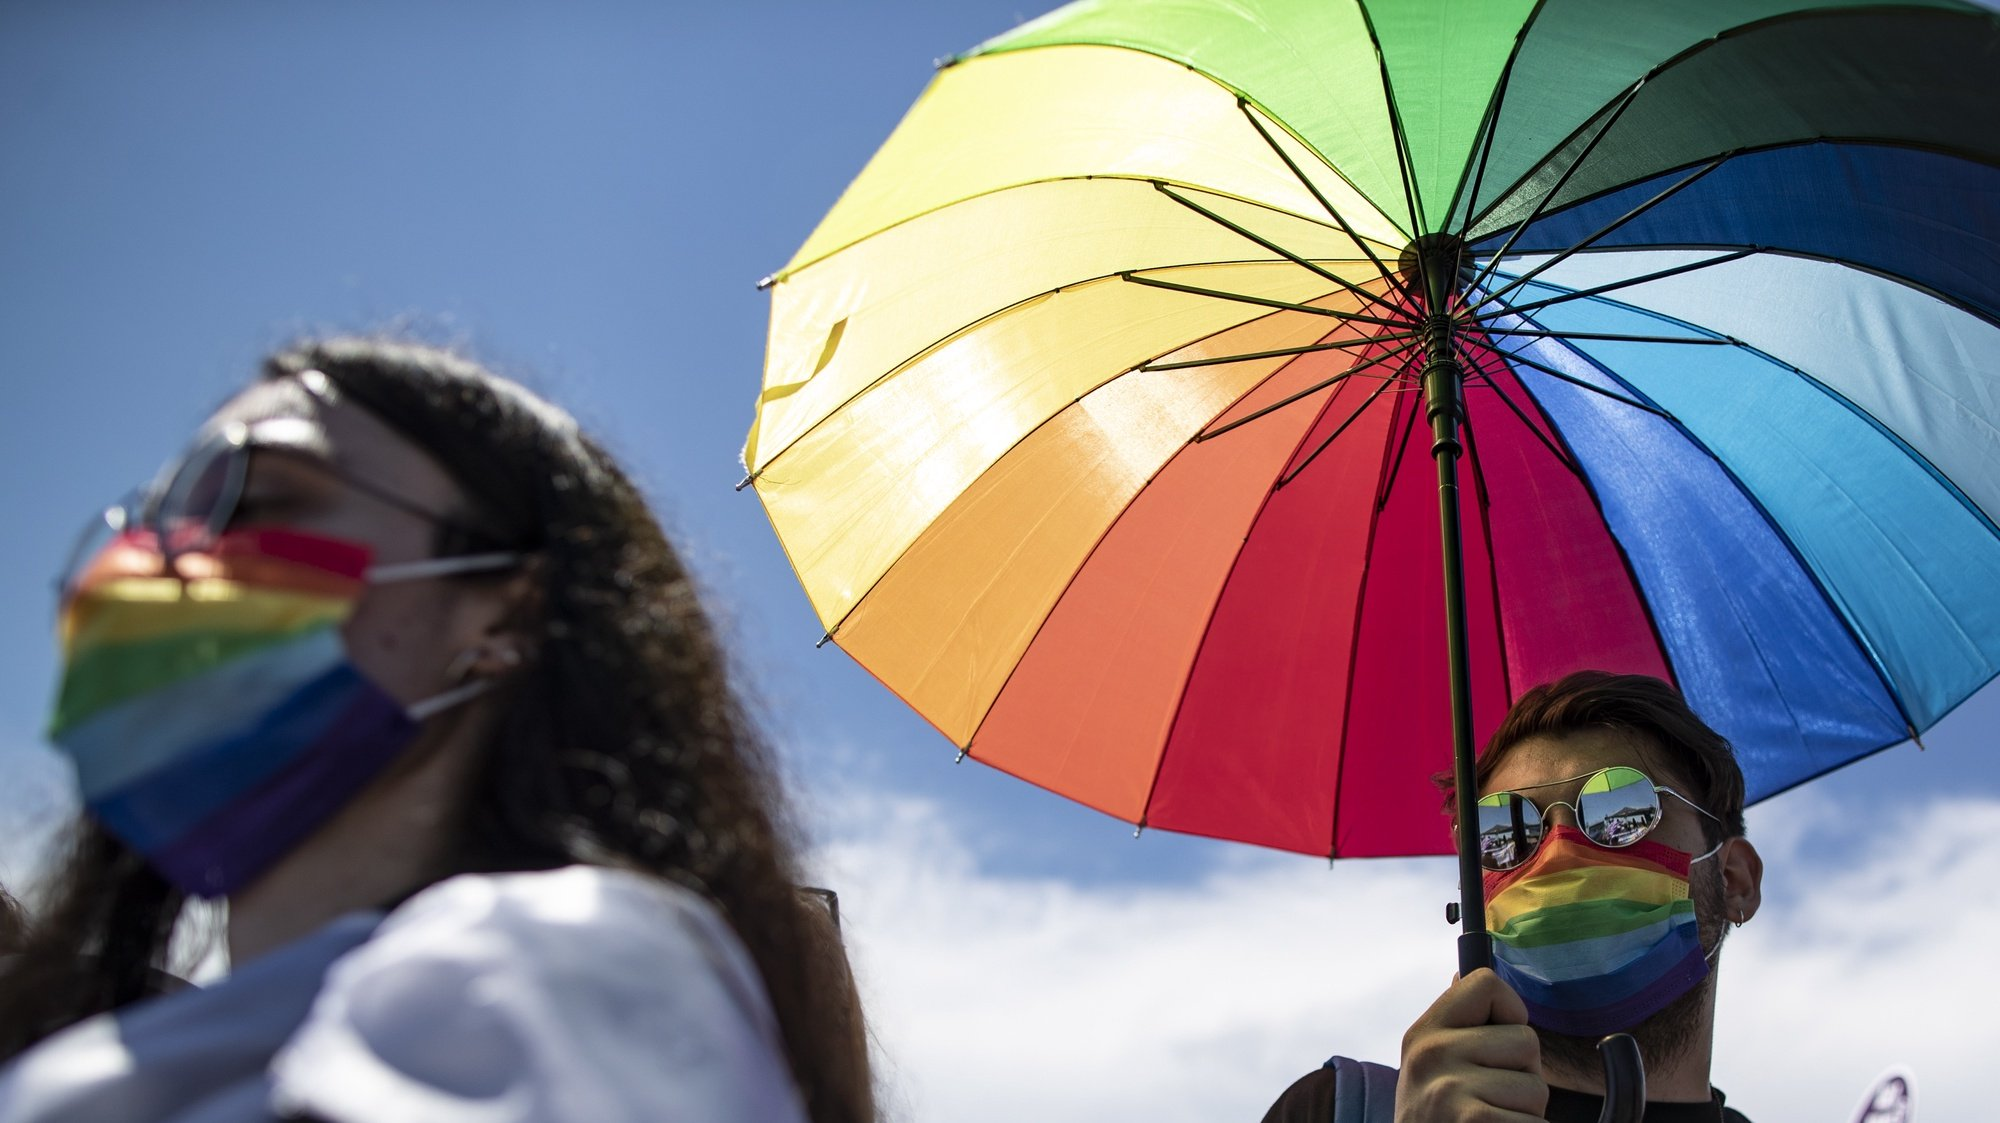 epa09285612 Members of the lesbian, gay, bisexual, transgender and queer (LGBTQ) community hold an umbrella with LGBTQI+ rainbow flag during a rally against Turkey's withdrawal from Istanbul Convention in Istanbul, Turkey, 19 June 2021. Turkish President Recep Tayyip Erdogan pulled Turkey out of the Istanbul Convention, which is an international accord designed to protect women, which was started by the Council of Europe in 2011 for the Prevention of Violence against Women and Domestic Violence, and is signed by 45 European countries as well as the EU as an organization.  EPA/ERDEM SAHIN